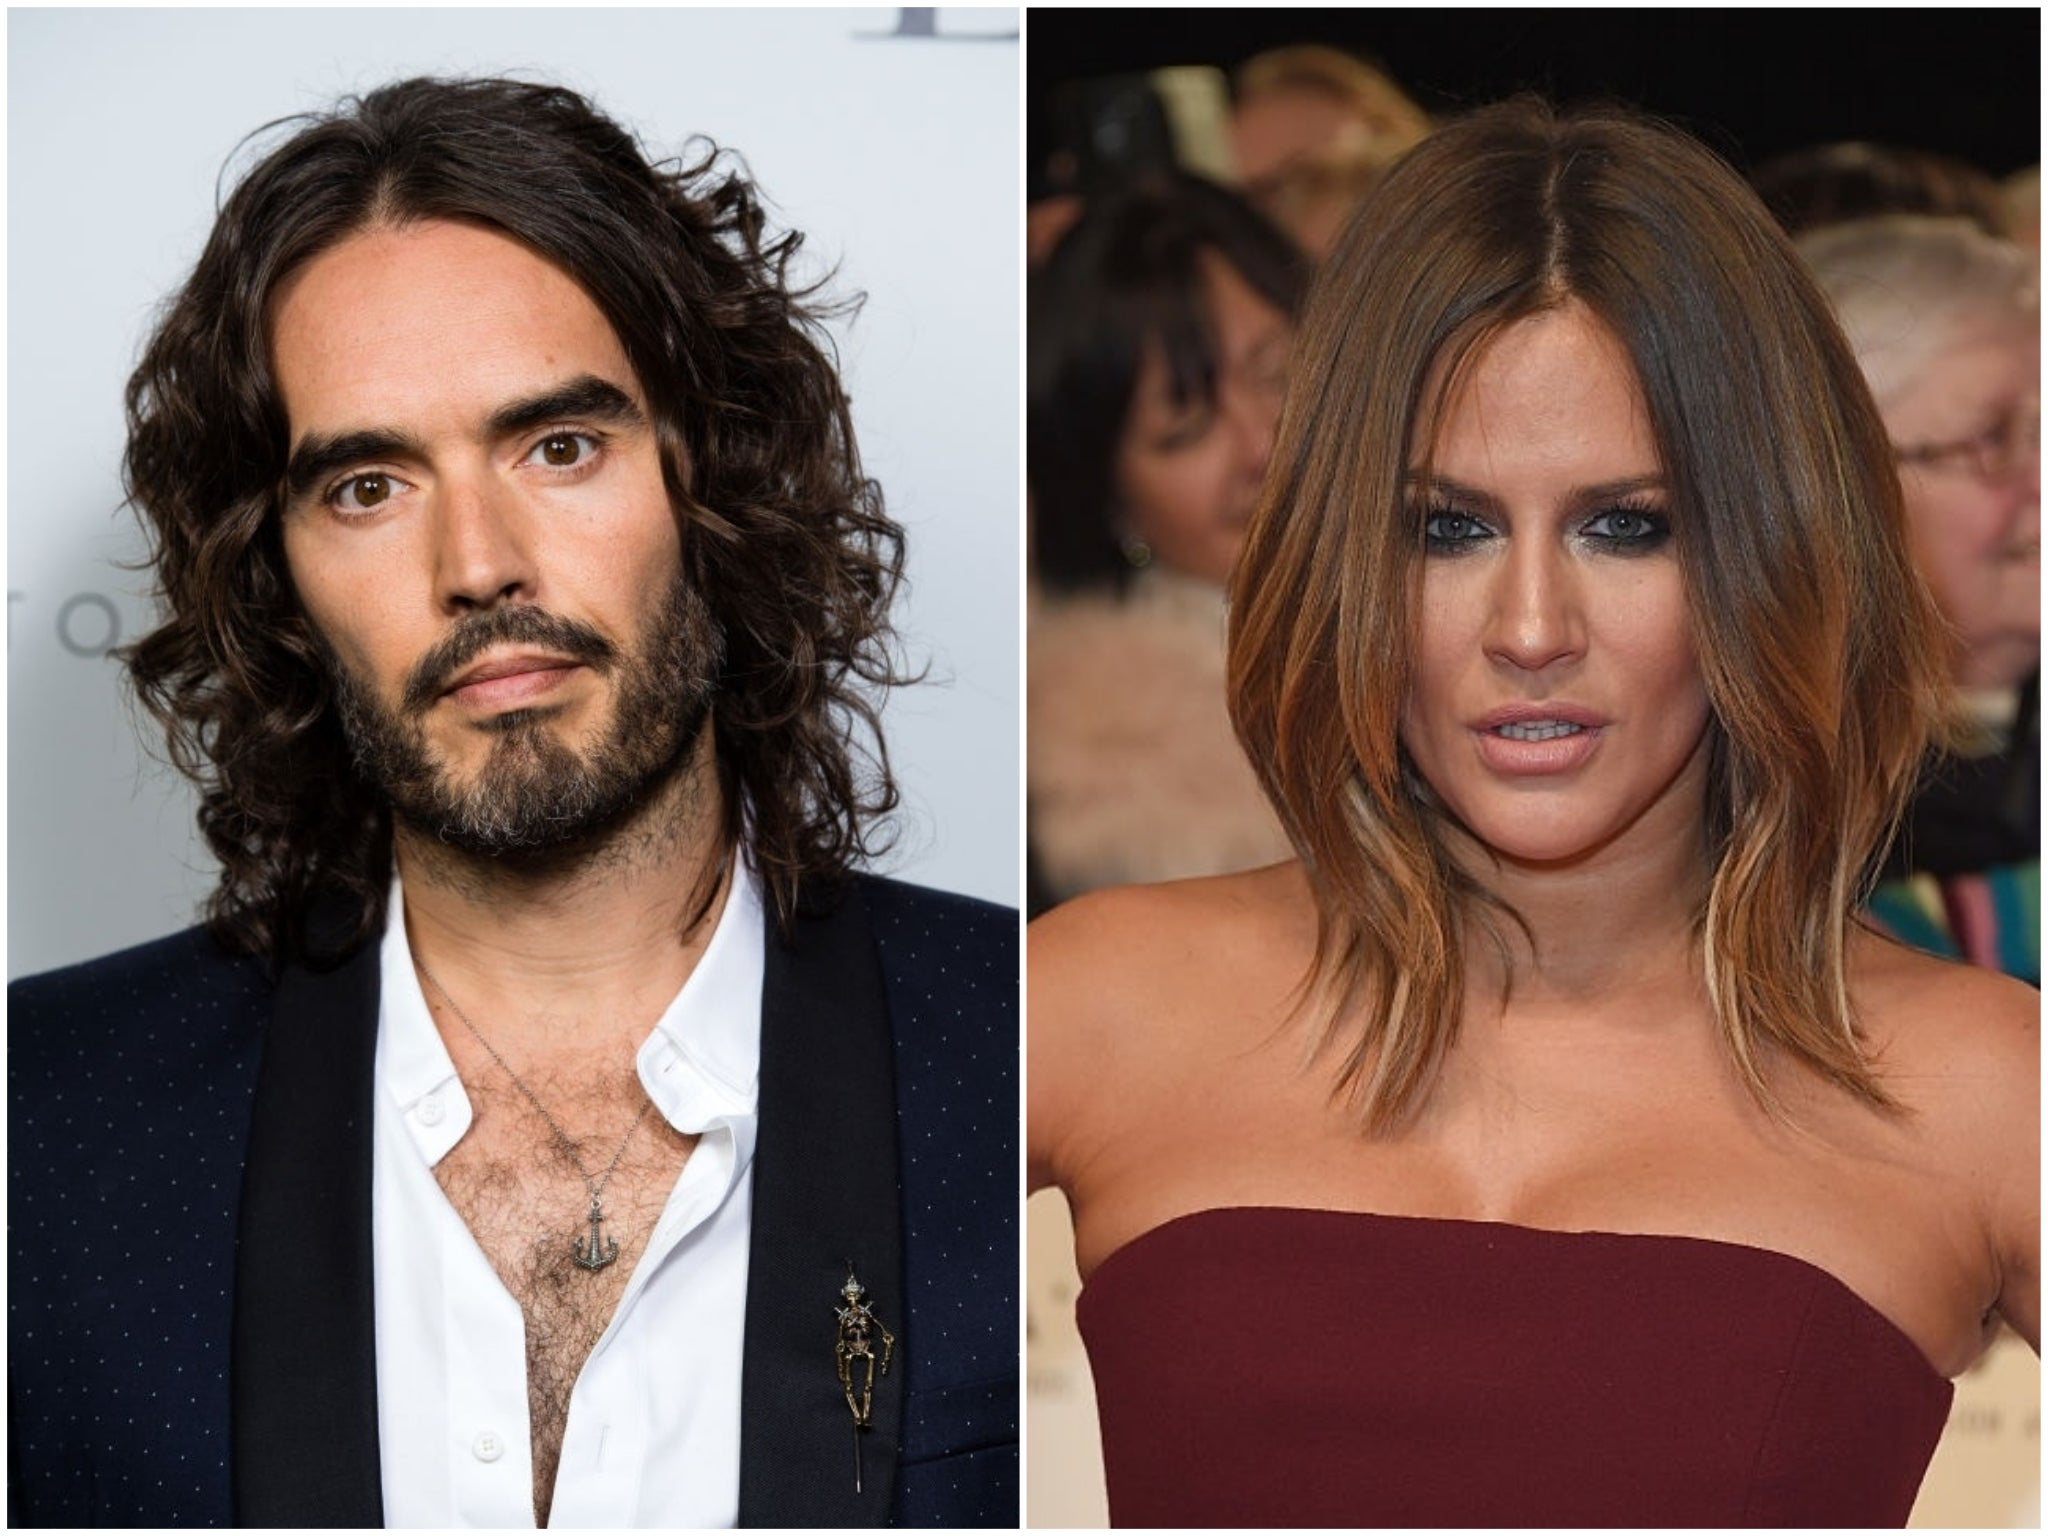 Russell Brand compares 'lovely' Caroline Flack to Amy Winehouse in moving essay